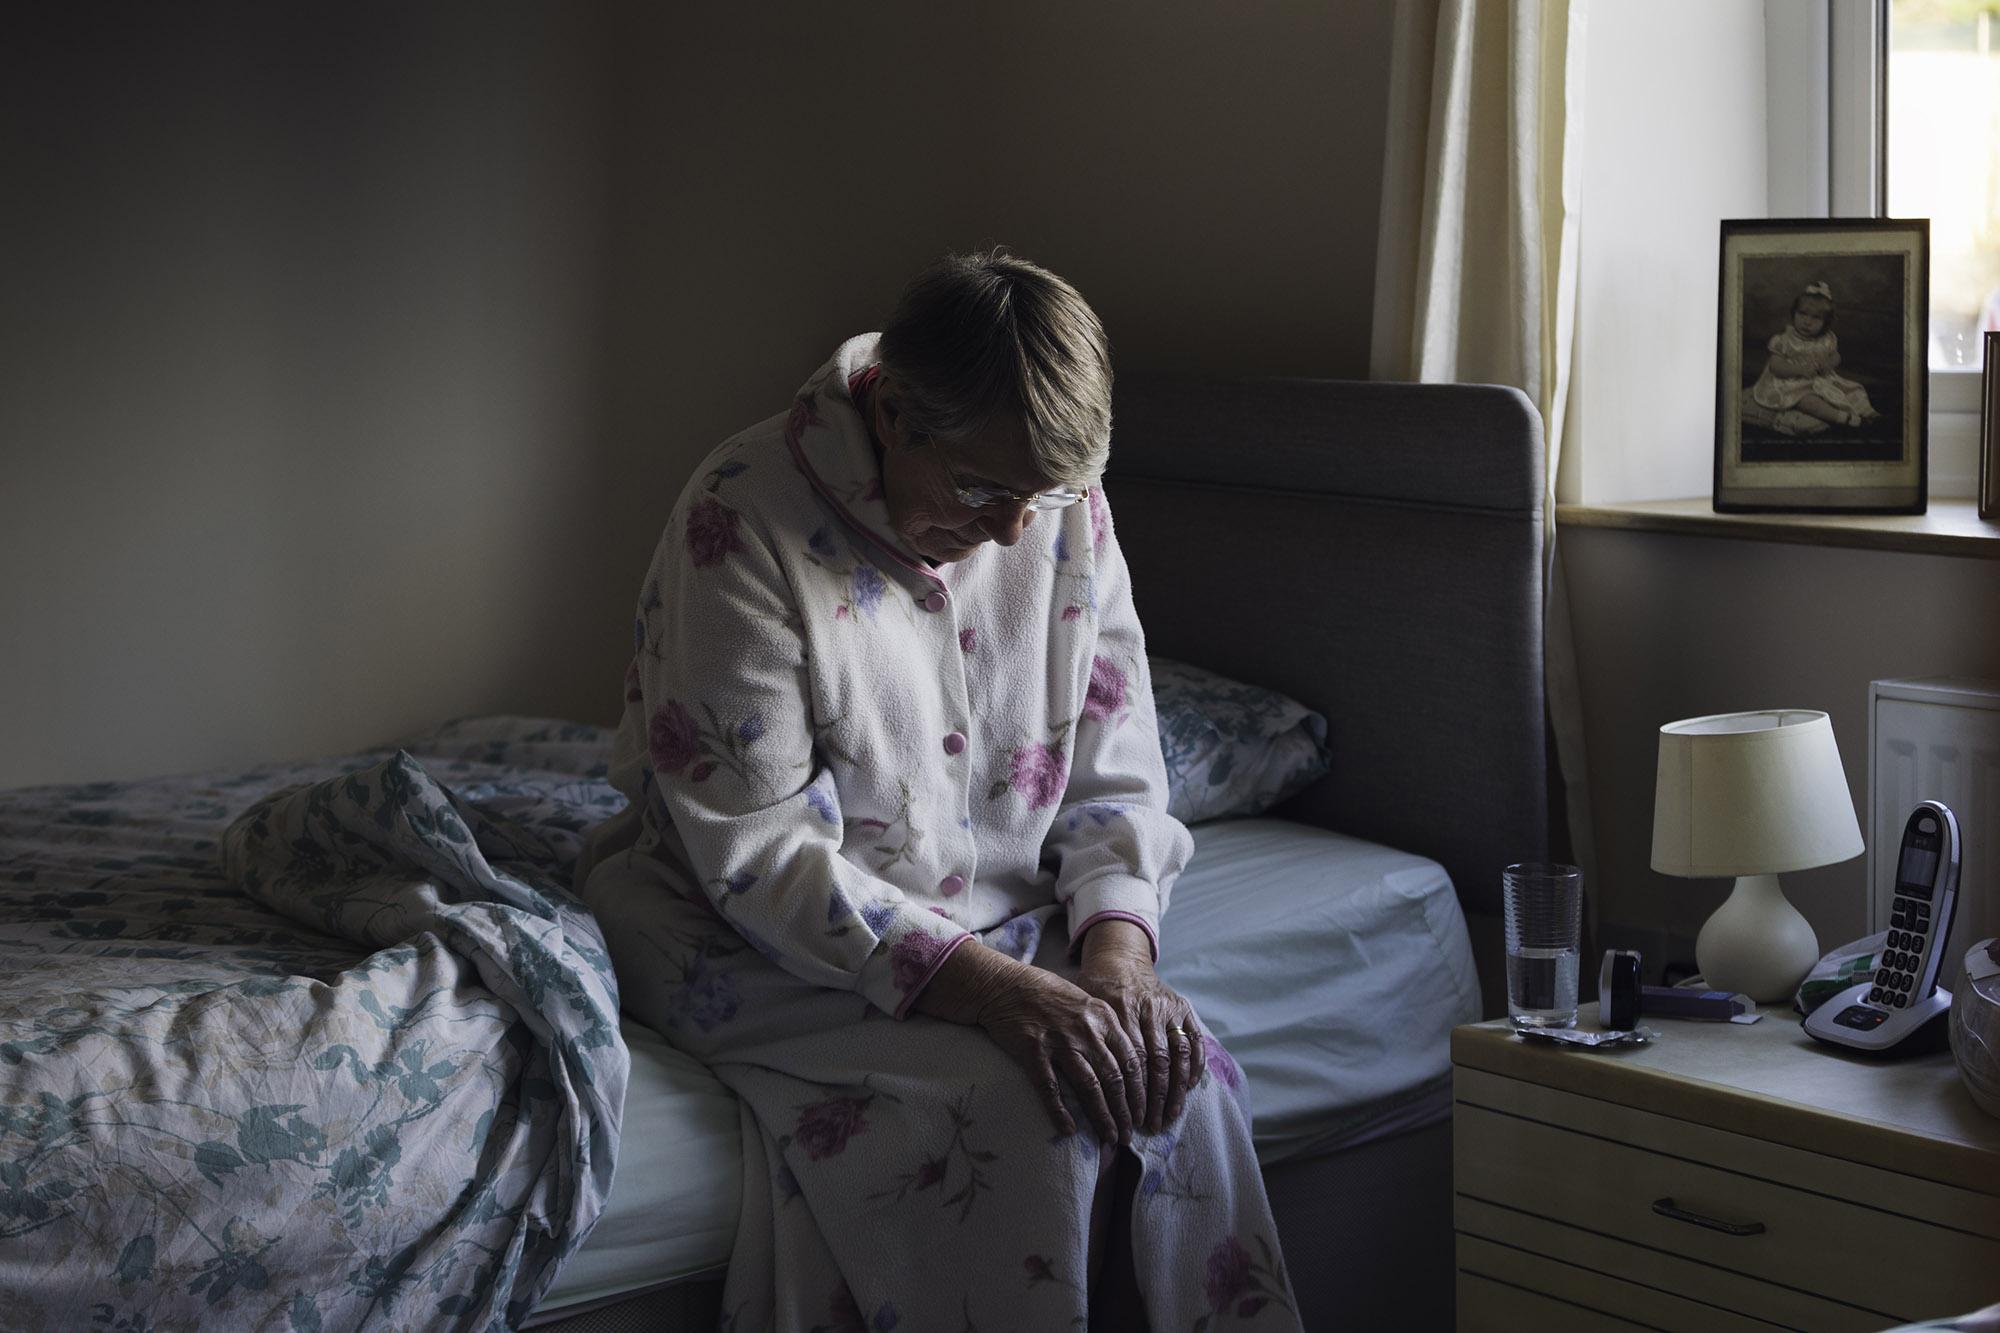 Depressed elderly woman sitting on a bed in the dark in a nursing home room